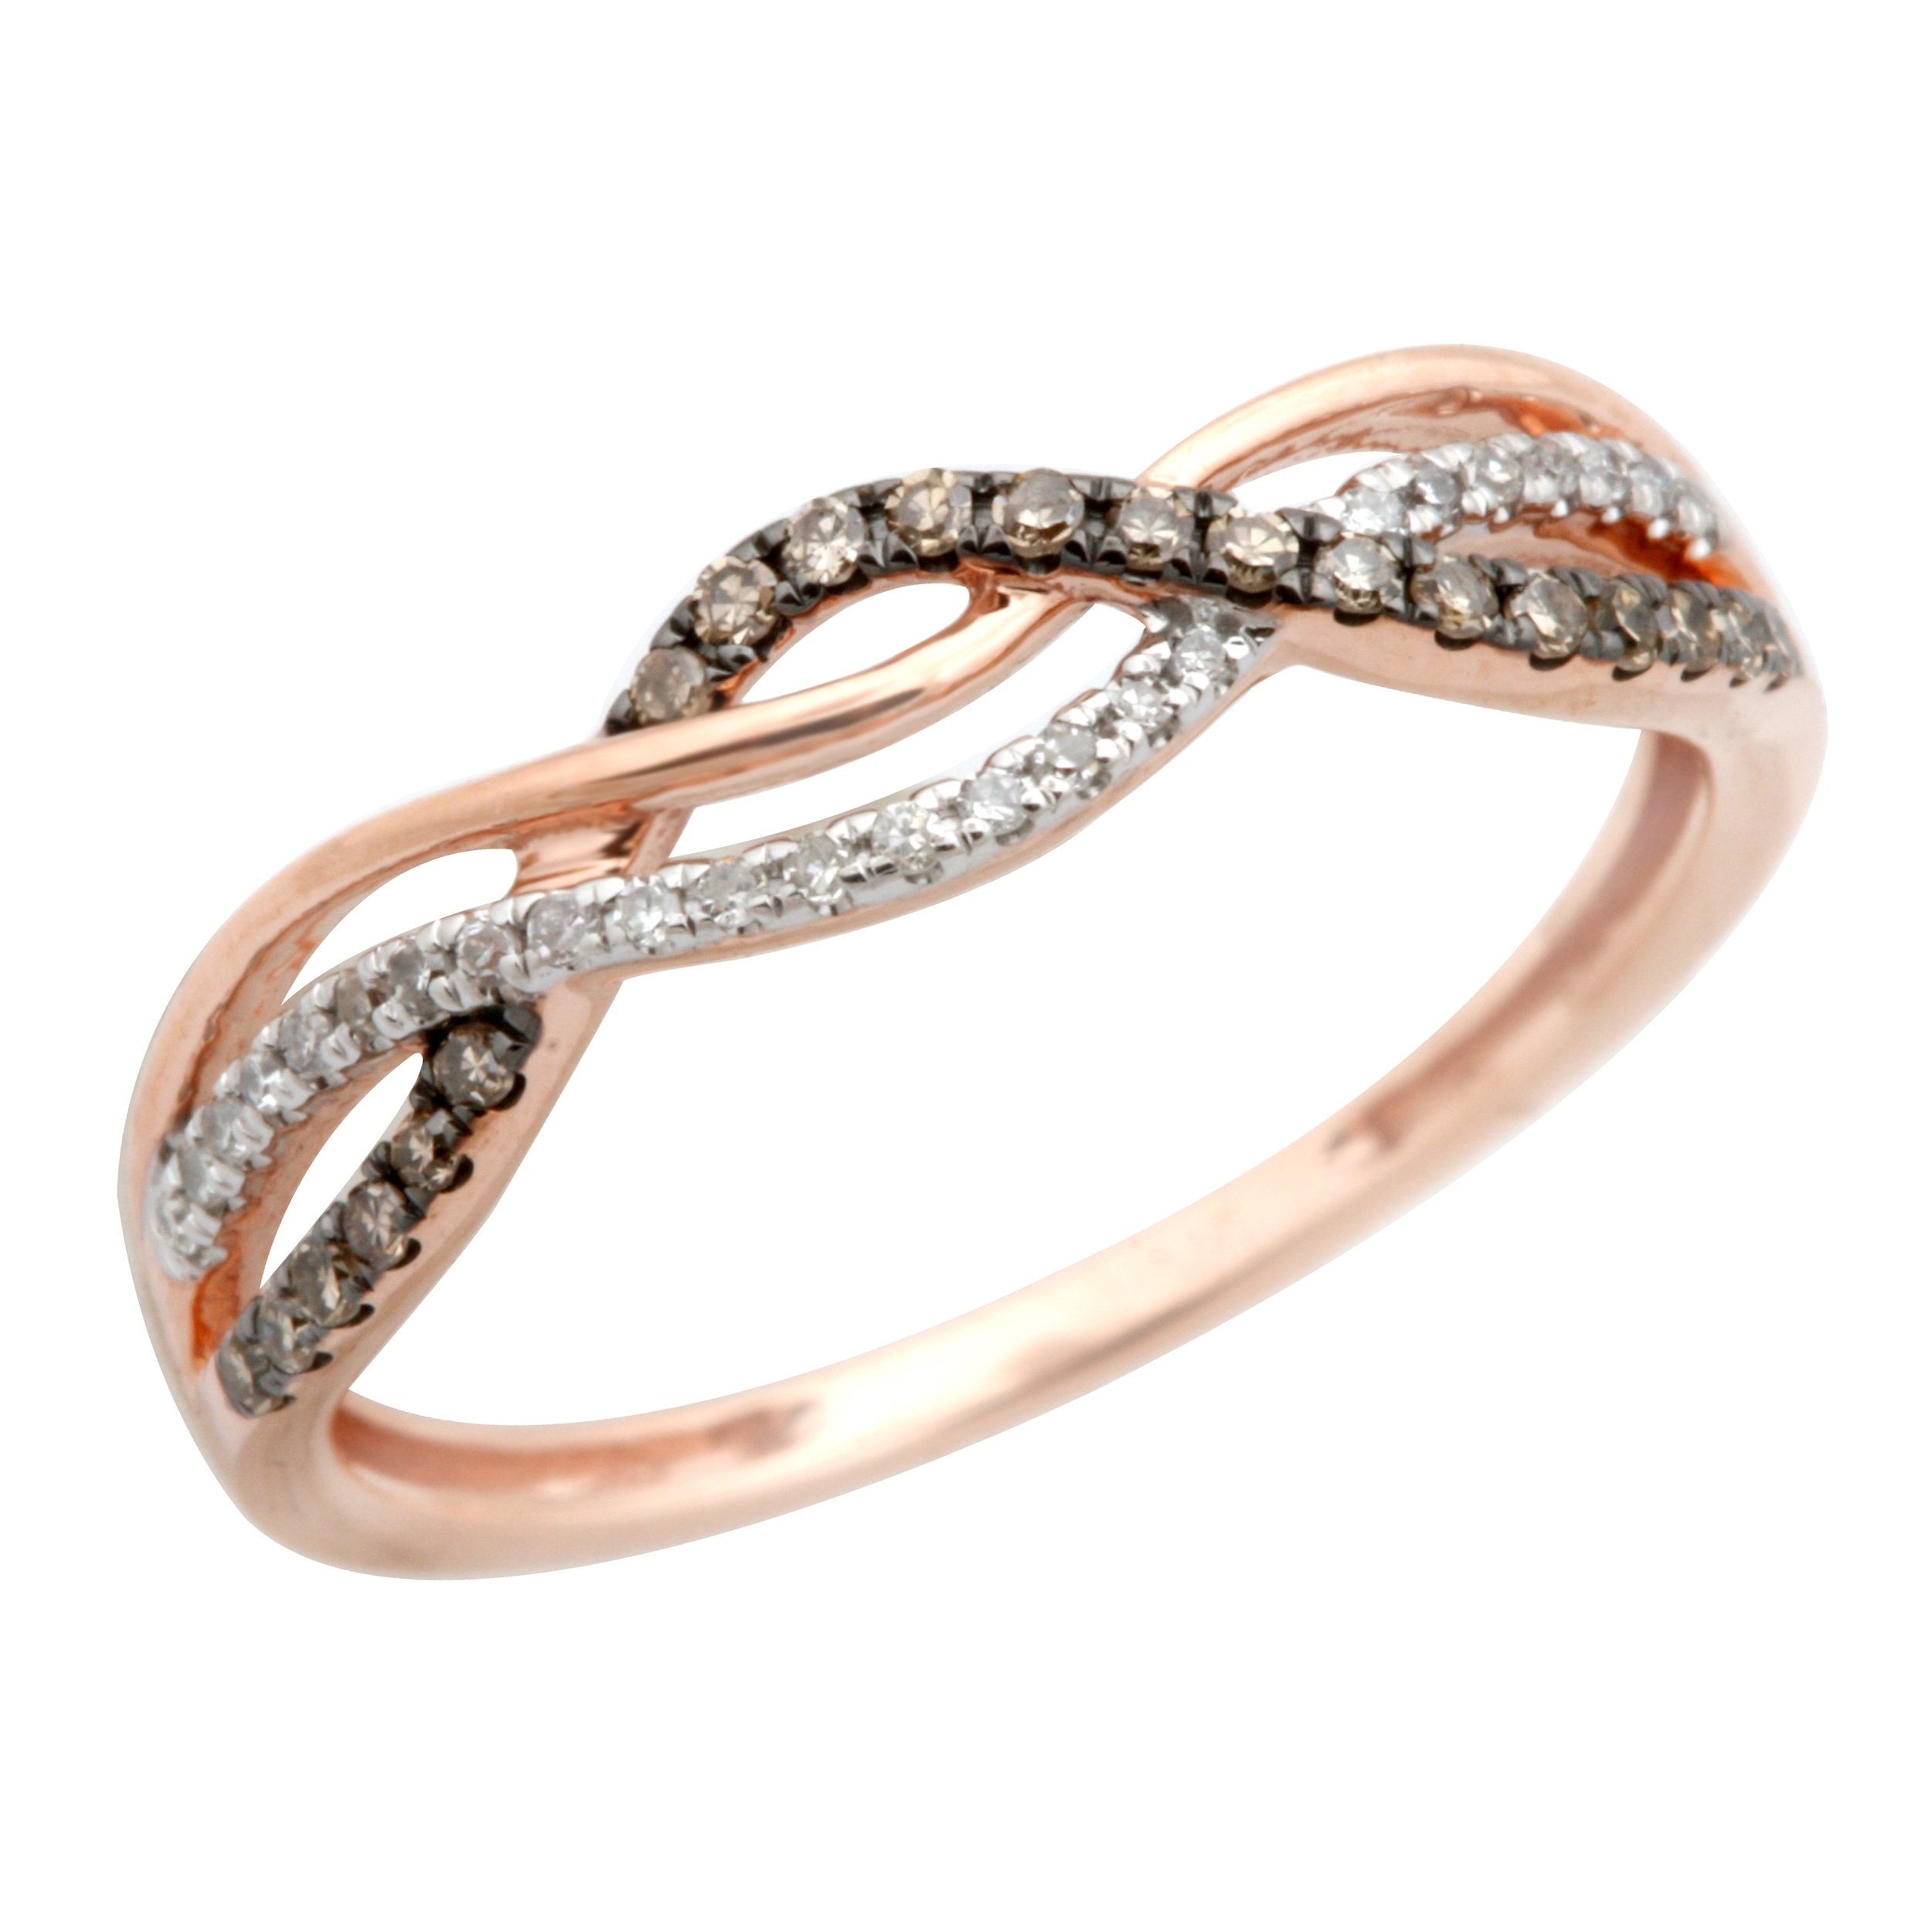 Twisted Half Eternity Anniversary Ring With Round Natural Brown & White Diamond, 14k Rose Gold, Size 6